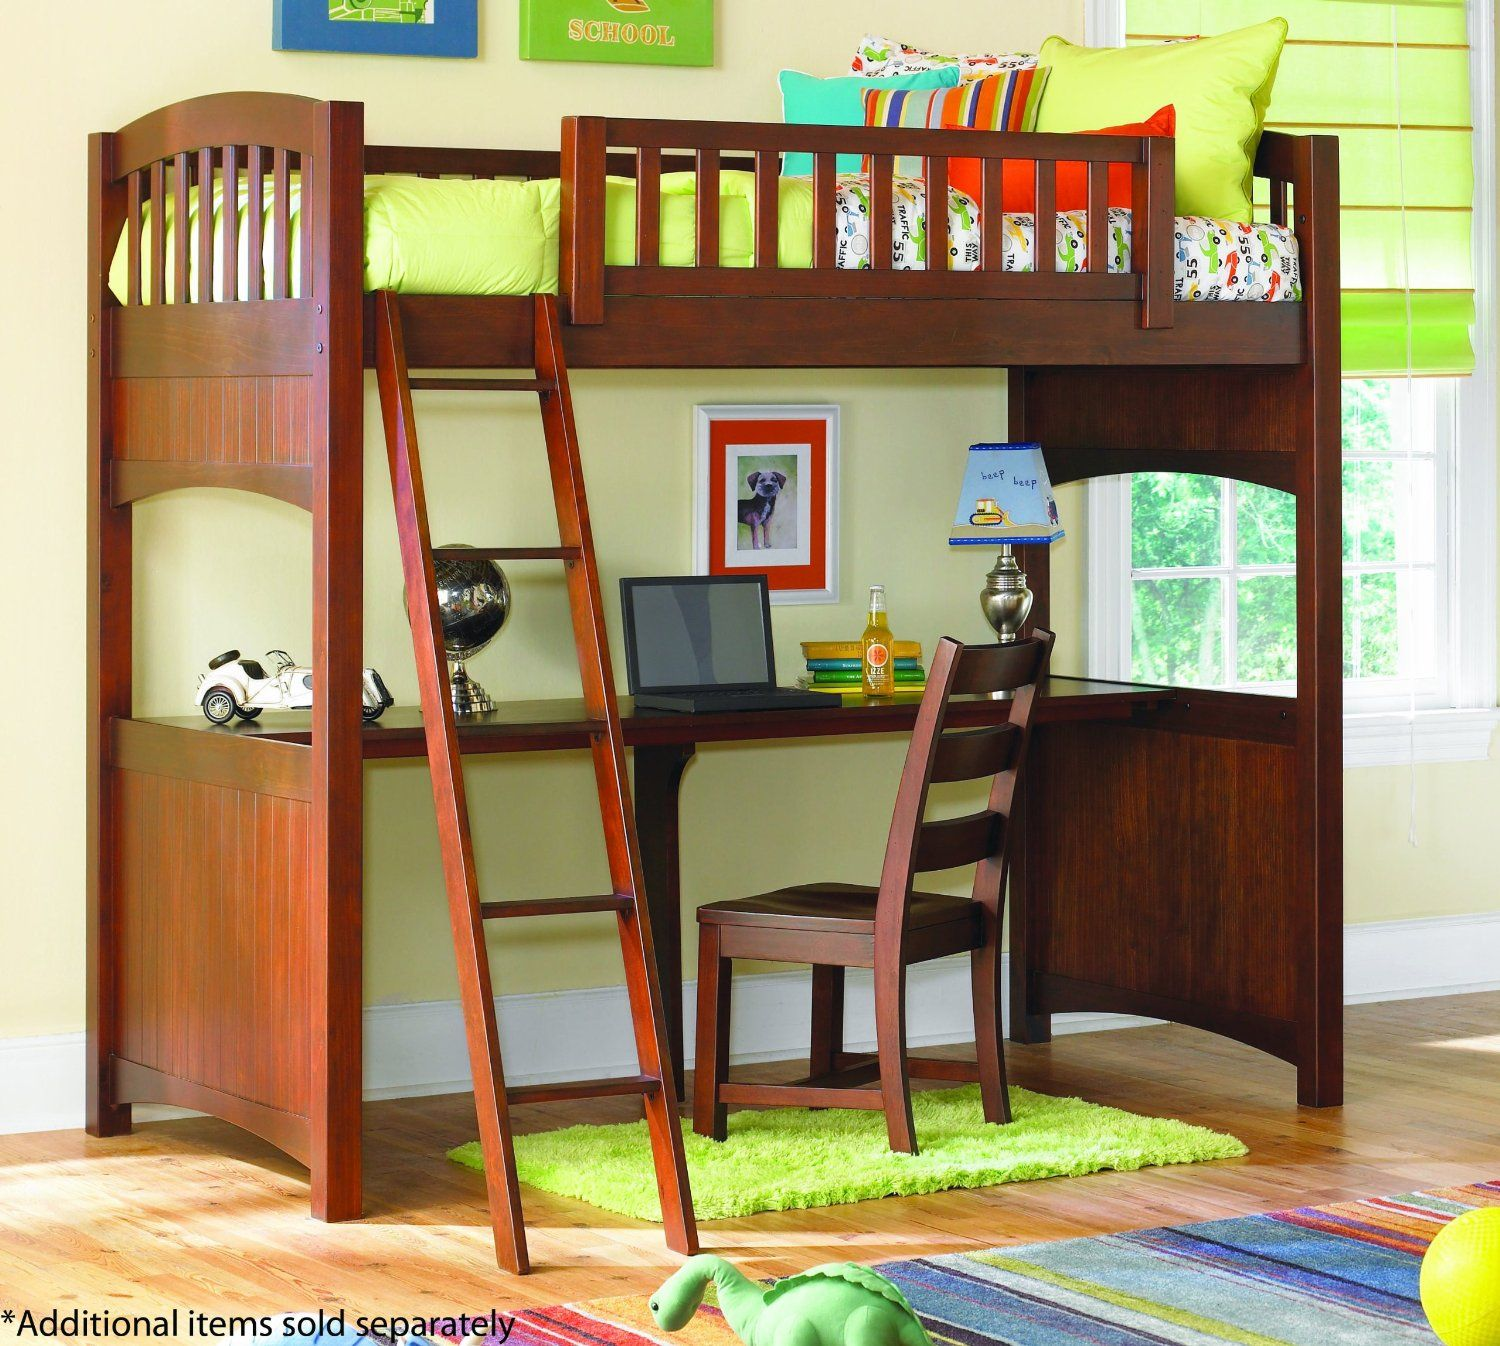 Bed For Four Kids King Size Beds For Sale Pine Beds Four Poster